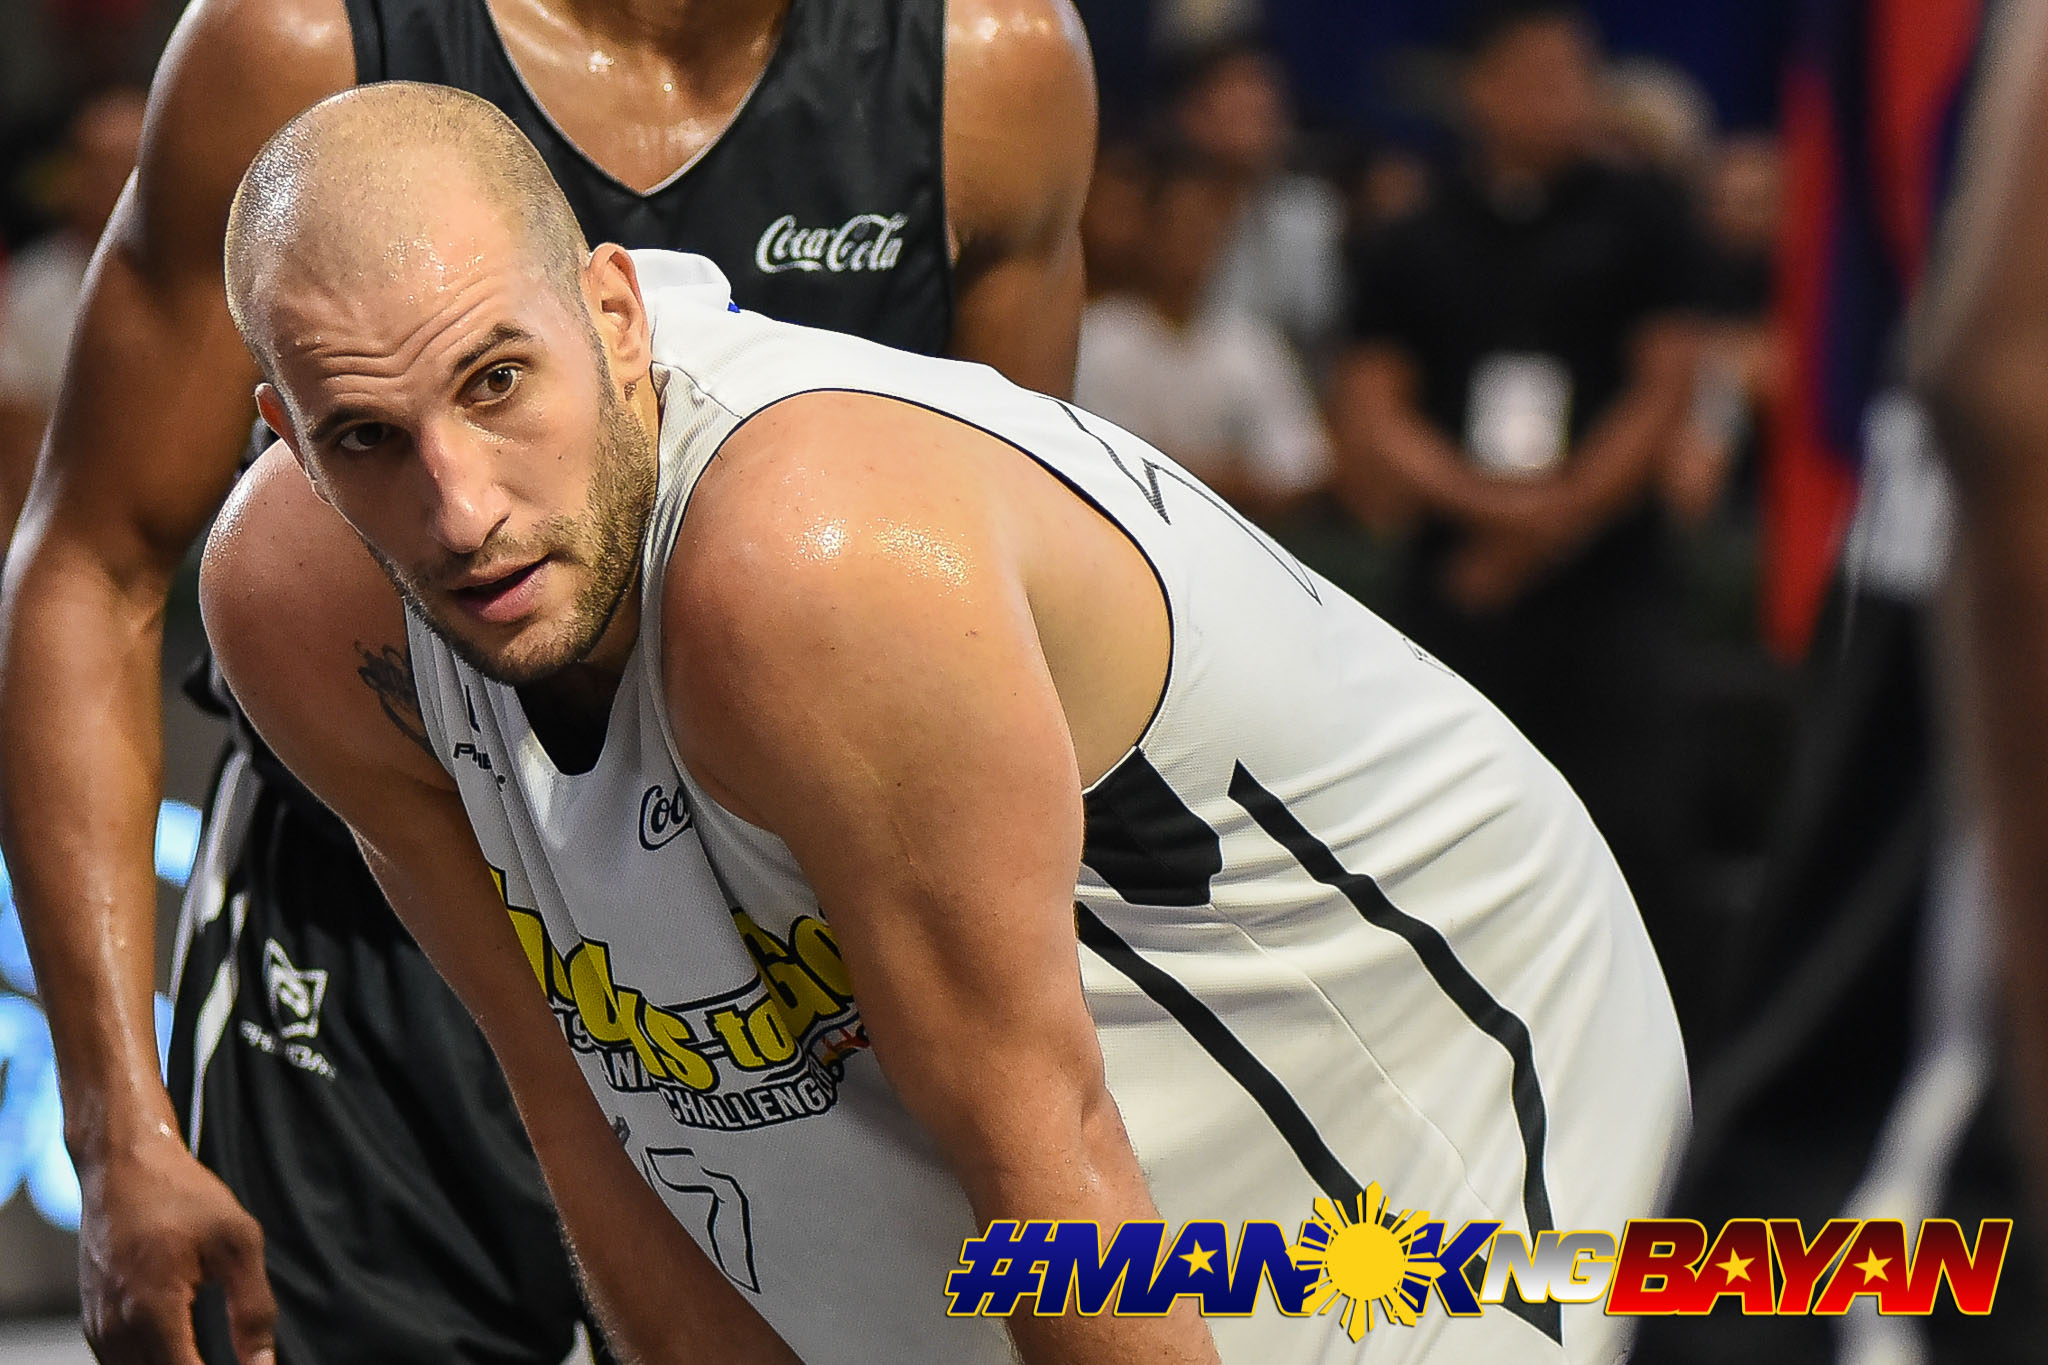 Tiebreaker Times Pavlovic vents frustration on Panaji as Pasig advances to Kaohsiung 3x3 playoffs 3x3 Basketball Chooks-to-Go Pilipinas 3x3 News  Troy Rike Pasig Chooks Panaji 3BL Nikola Pavlovic Joshua Munzon Dylan Ababou 2019 Kaohsiung Challenger 2019 Chooks-to-Go Pilipinas 3x3 Season